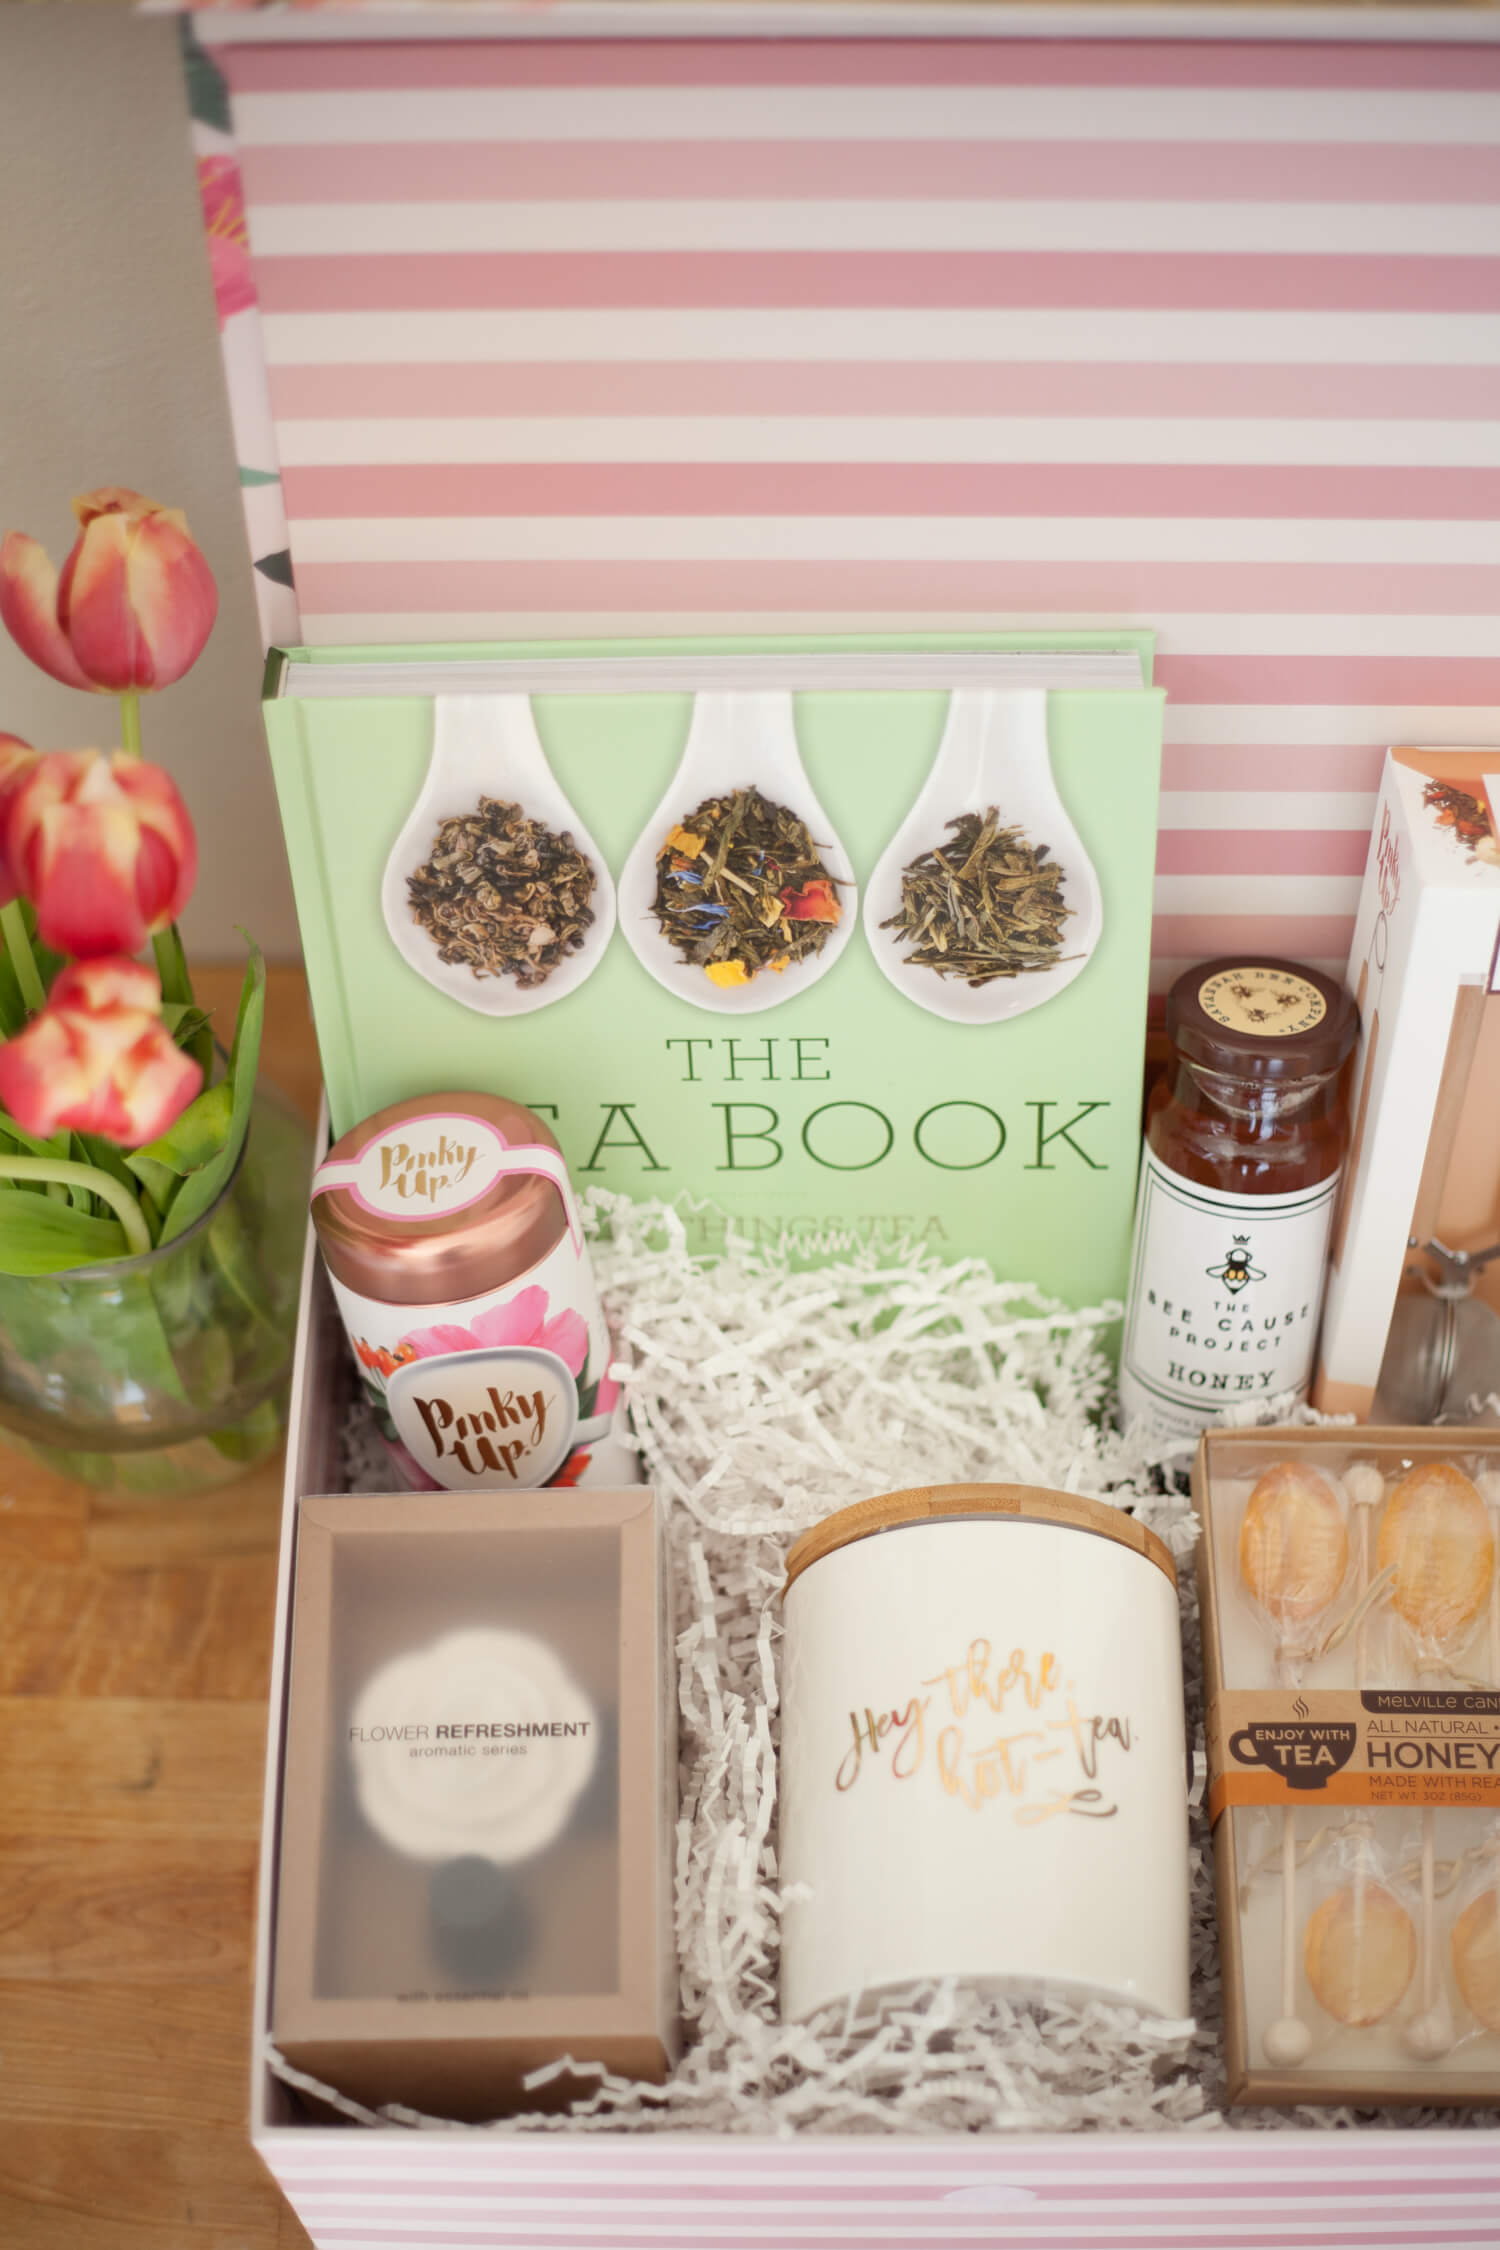 Tea, anyone? Such a cute gift basket idea for the tea lover!